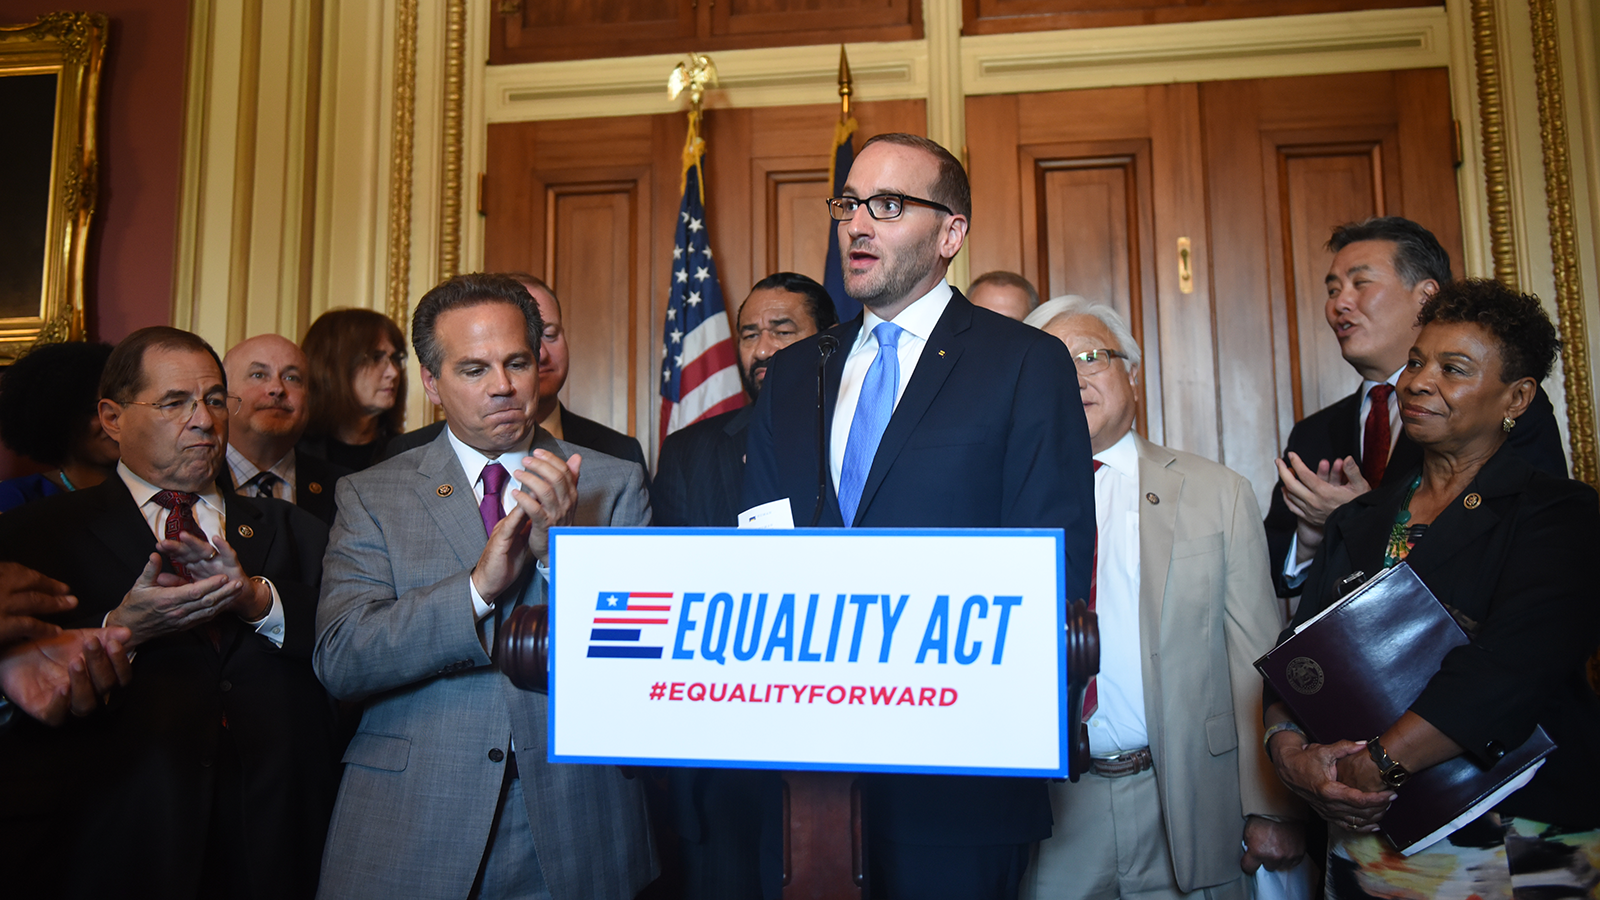 Ahead of Anniversary of Equality Act Introduction, HRC Announces Support of More Than 80 Major Corps